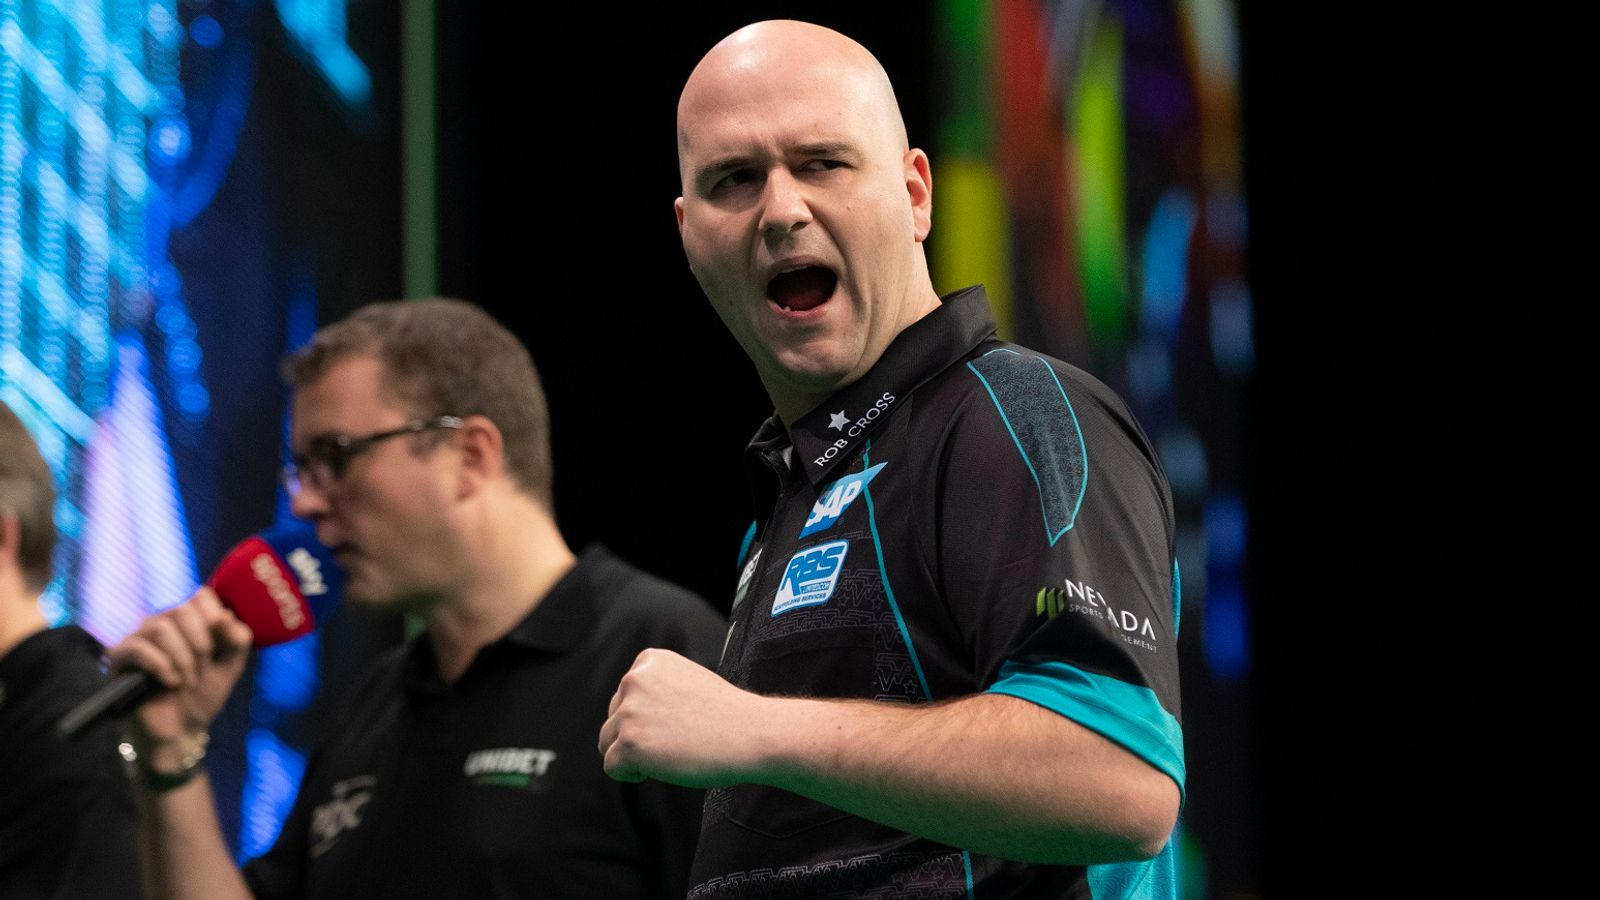 World Matchplay champion Rob Cross eyeing return to form after weight loss